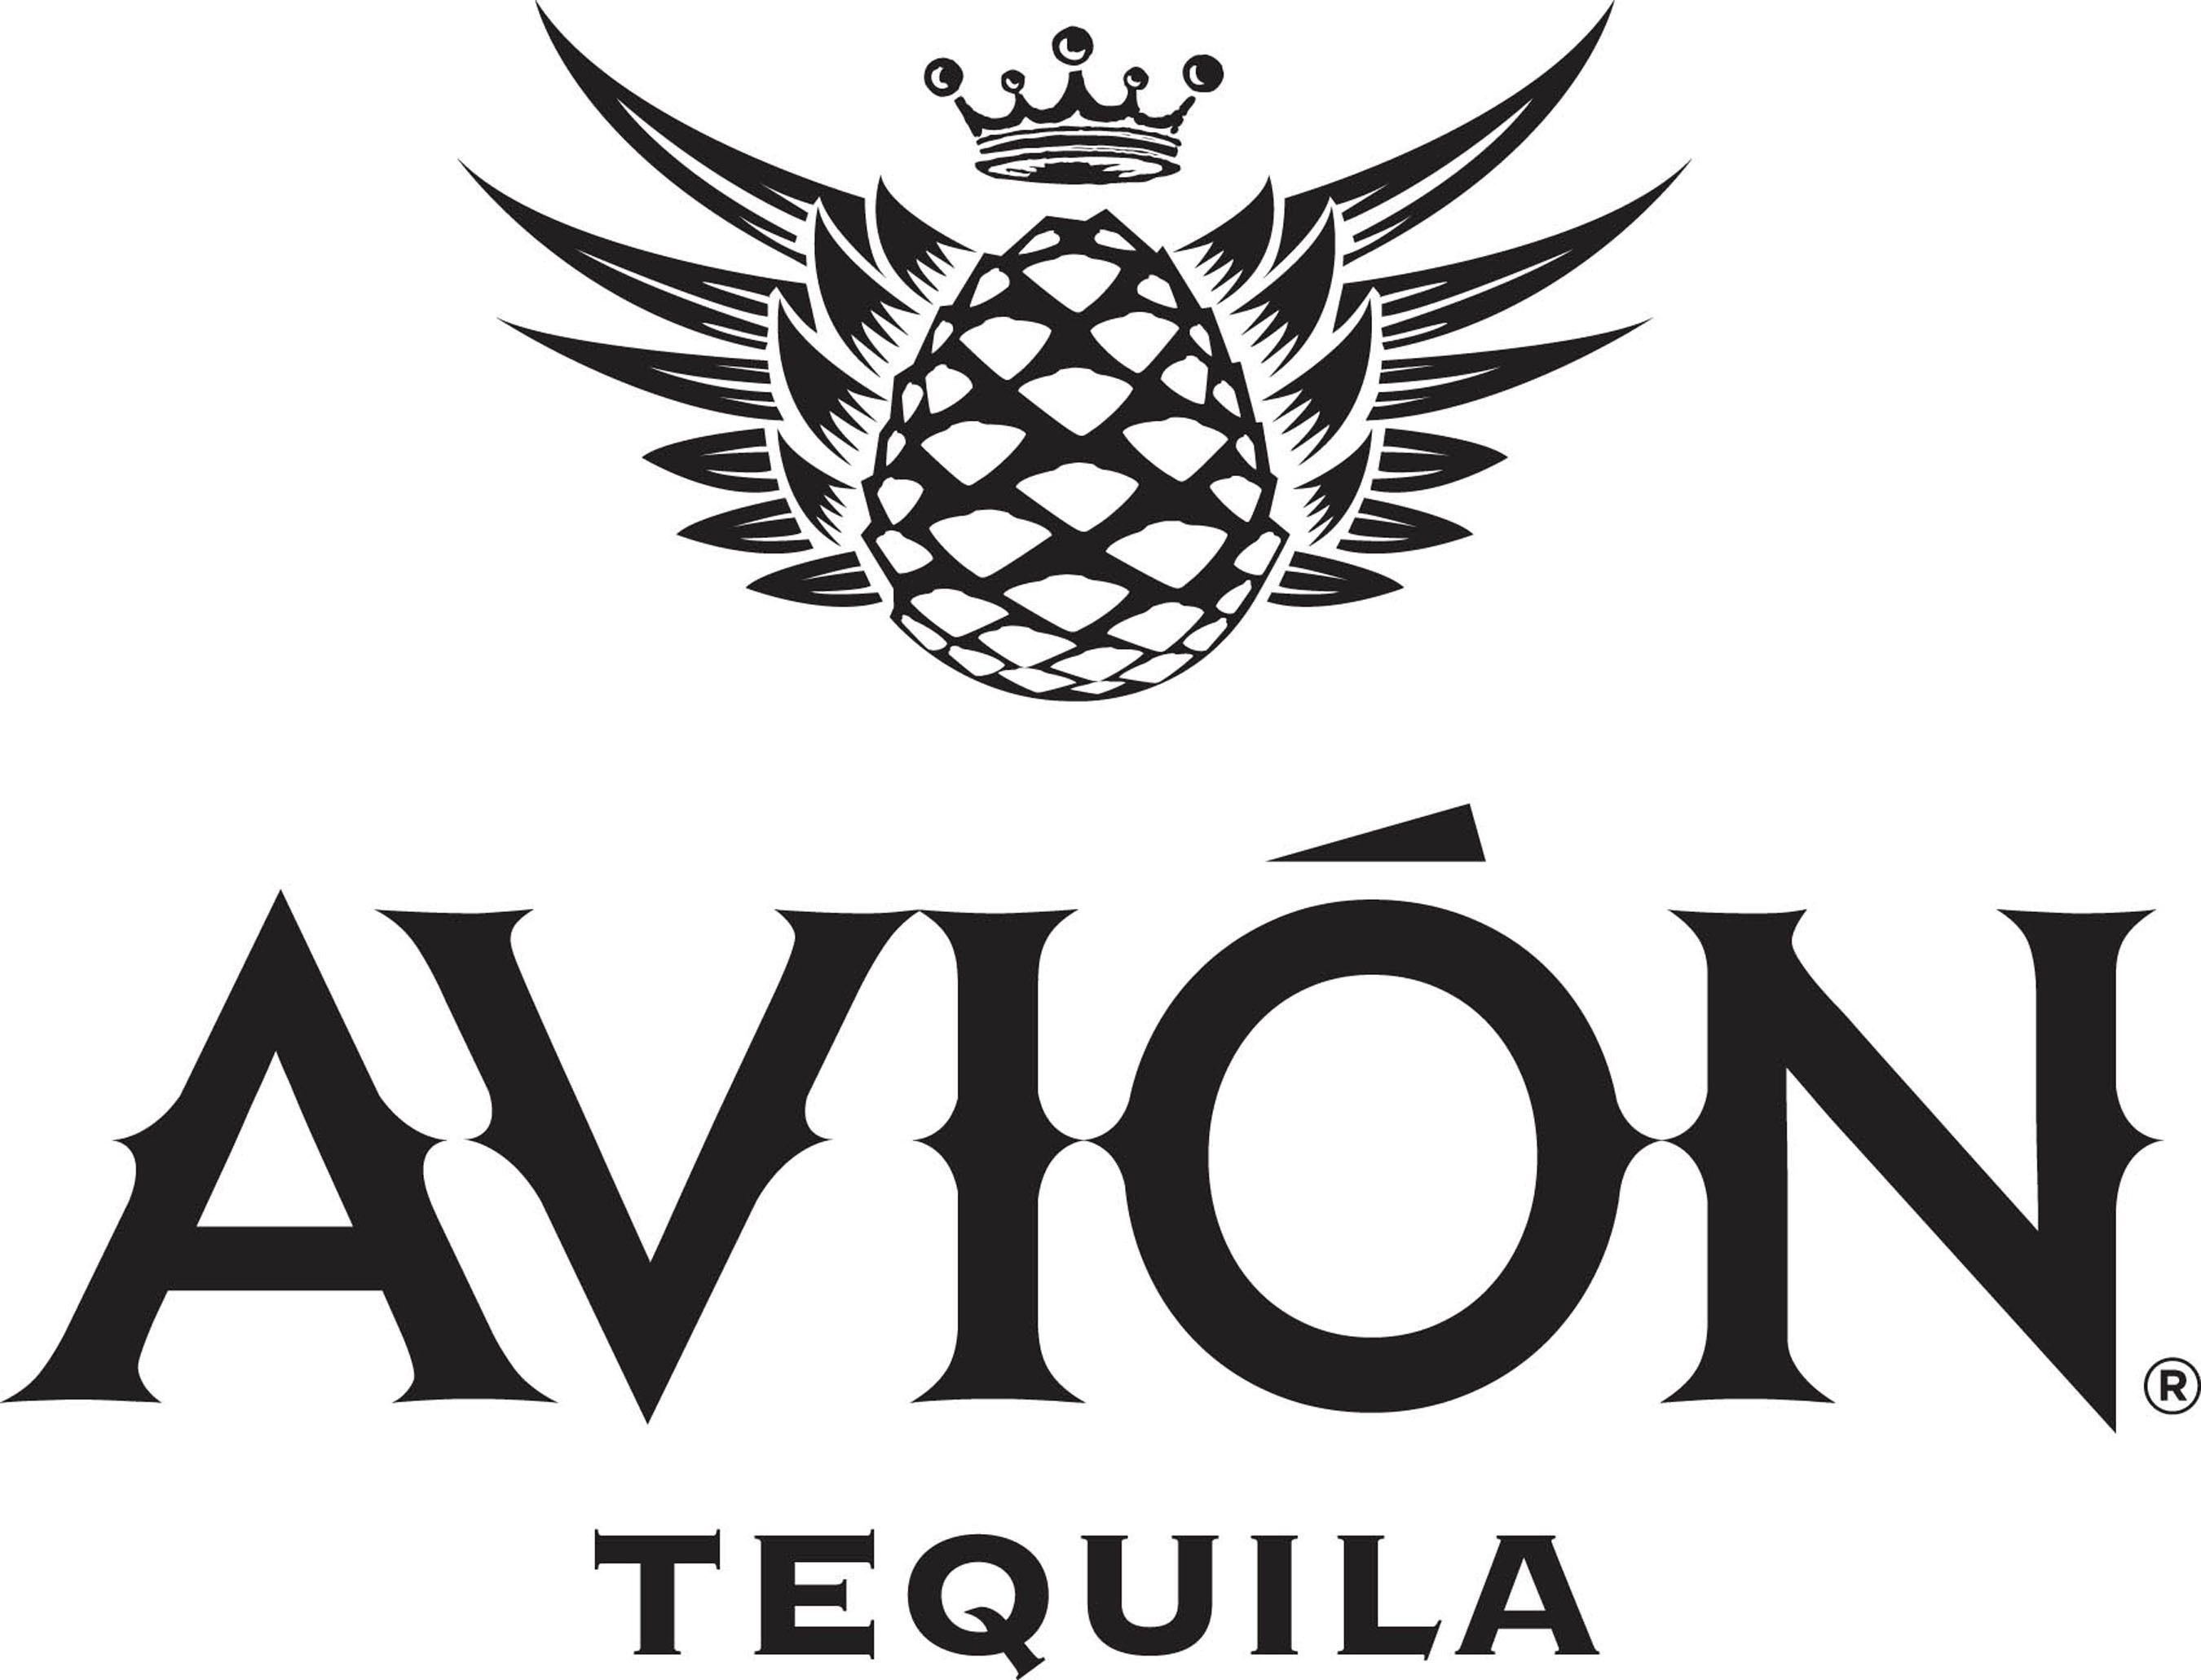 tequila avion announces partnership with 21 savage in new depart elevate arrive campaign https www prnewswire com news releases tequila avion announces partnership with 21 savage in new depart elevate arrive campaign 300898969 html